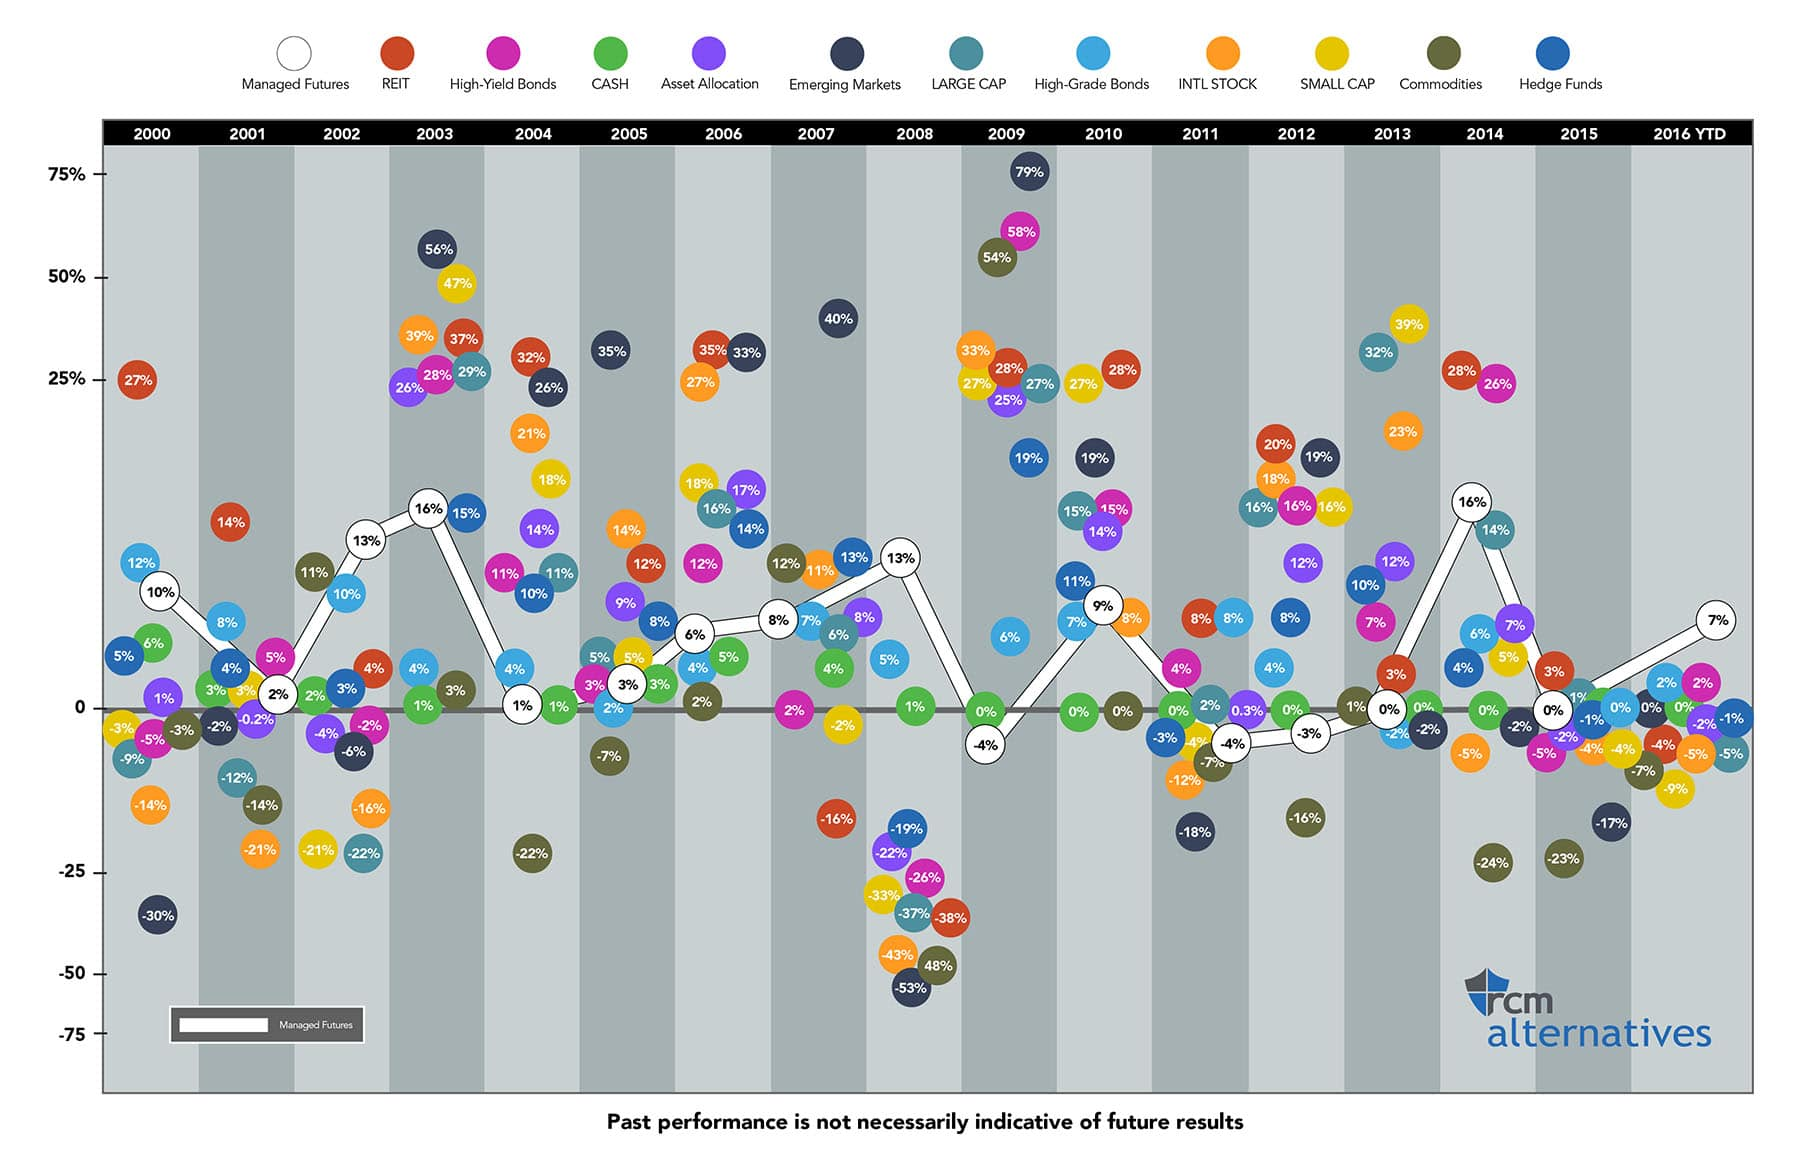 Periodic table timeline history images periodic table images the callan periodic table of investment returns rcm alternatives assetclassestimeline2016callin chart gamestrikefo images gamestrikefo Image collections